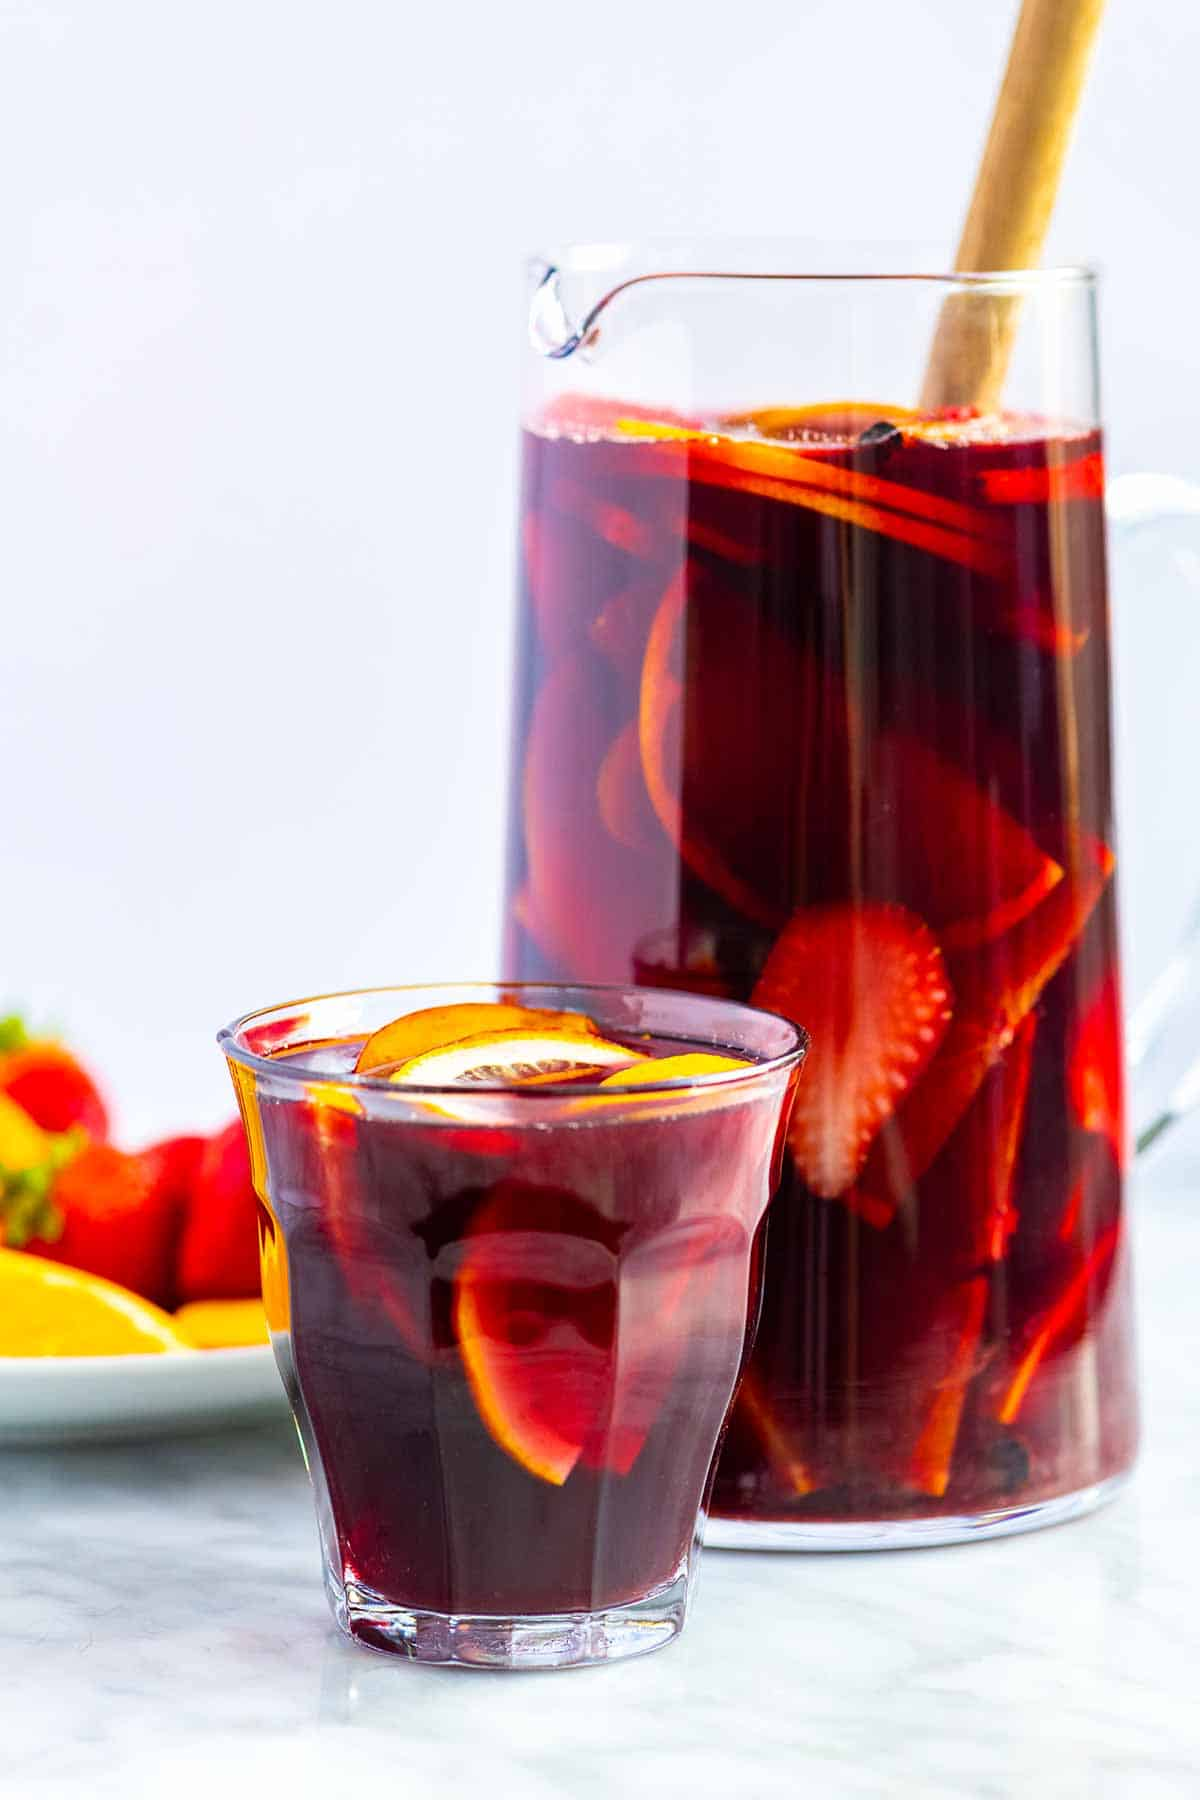 A pitcher of red sangria